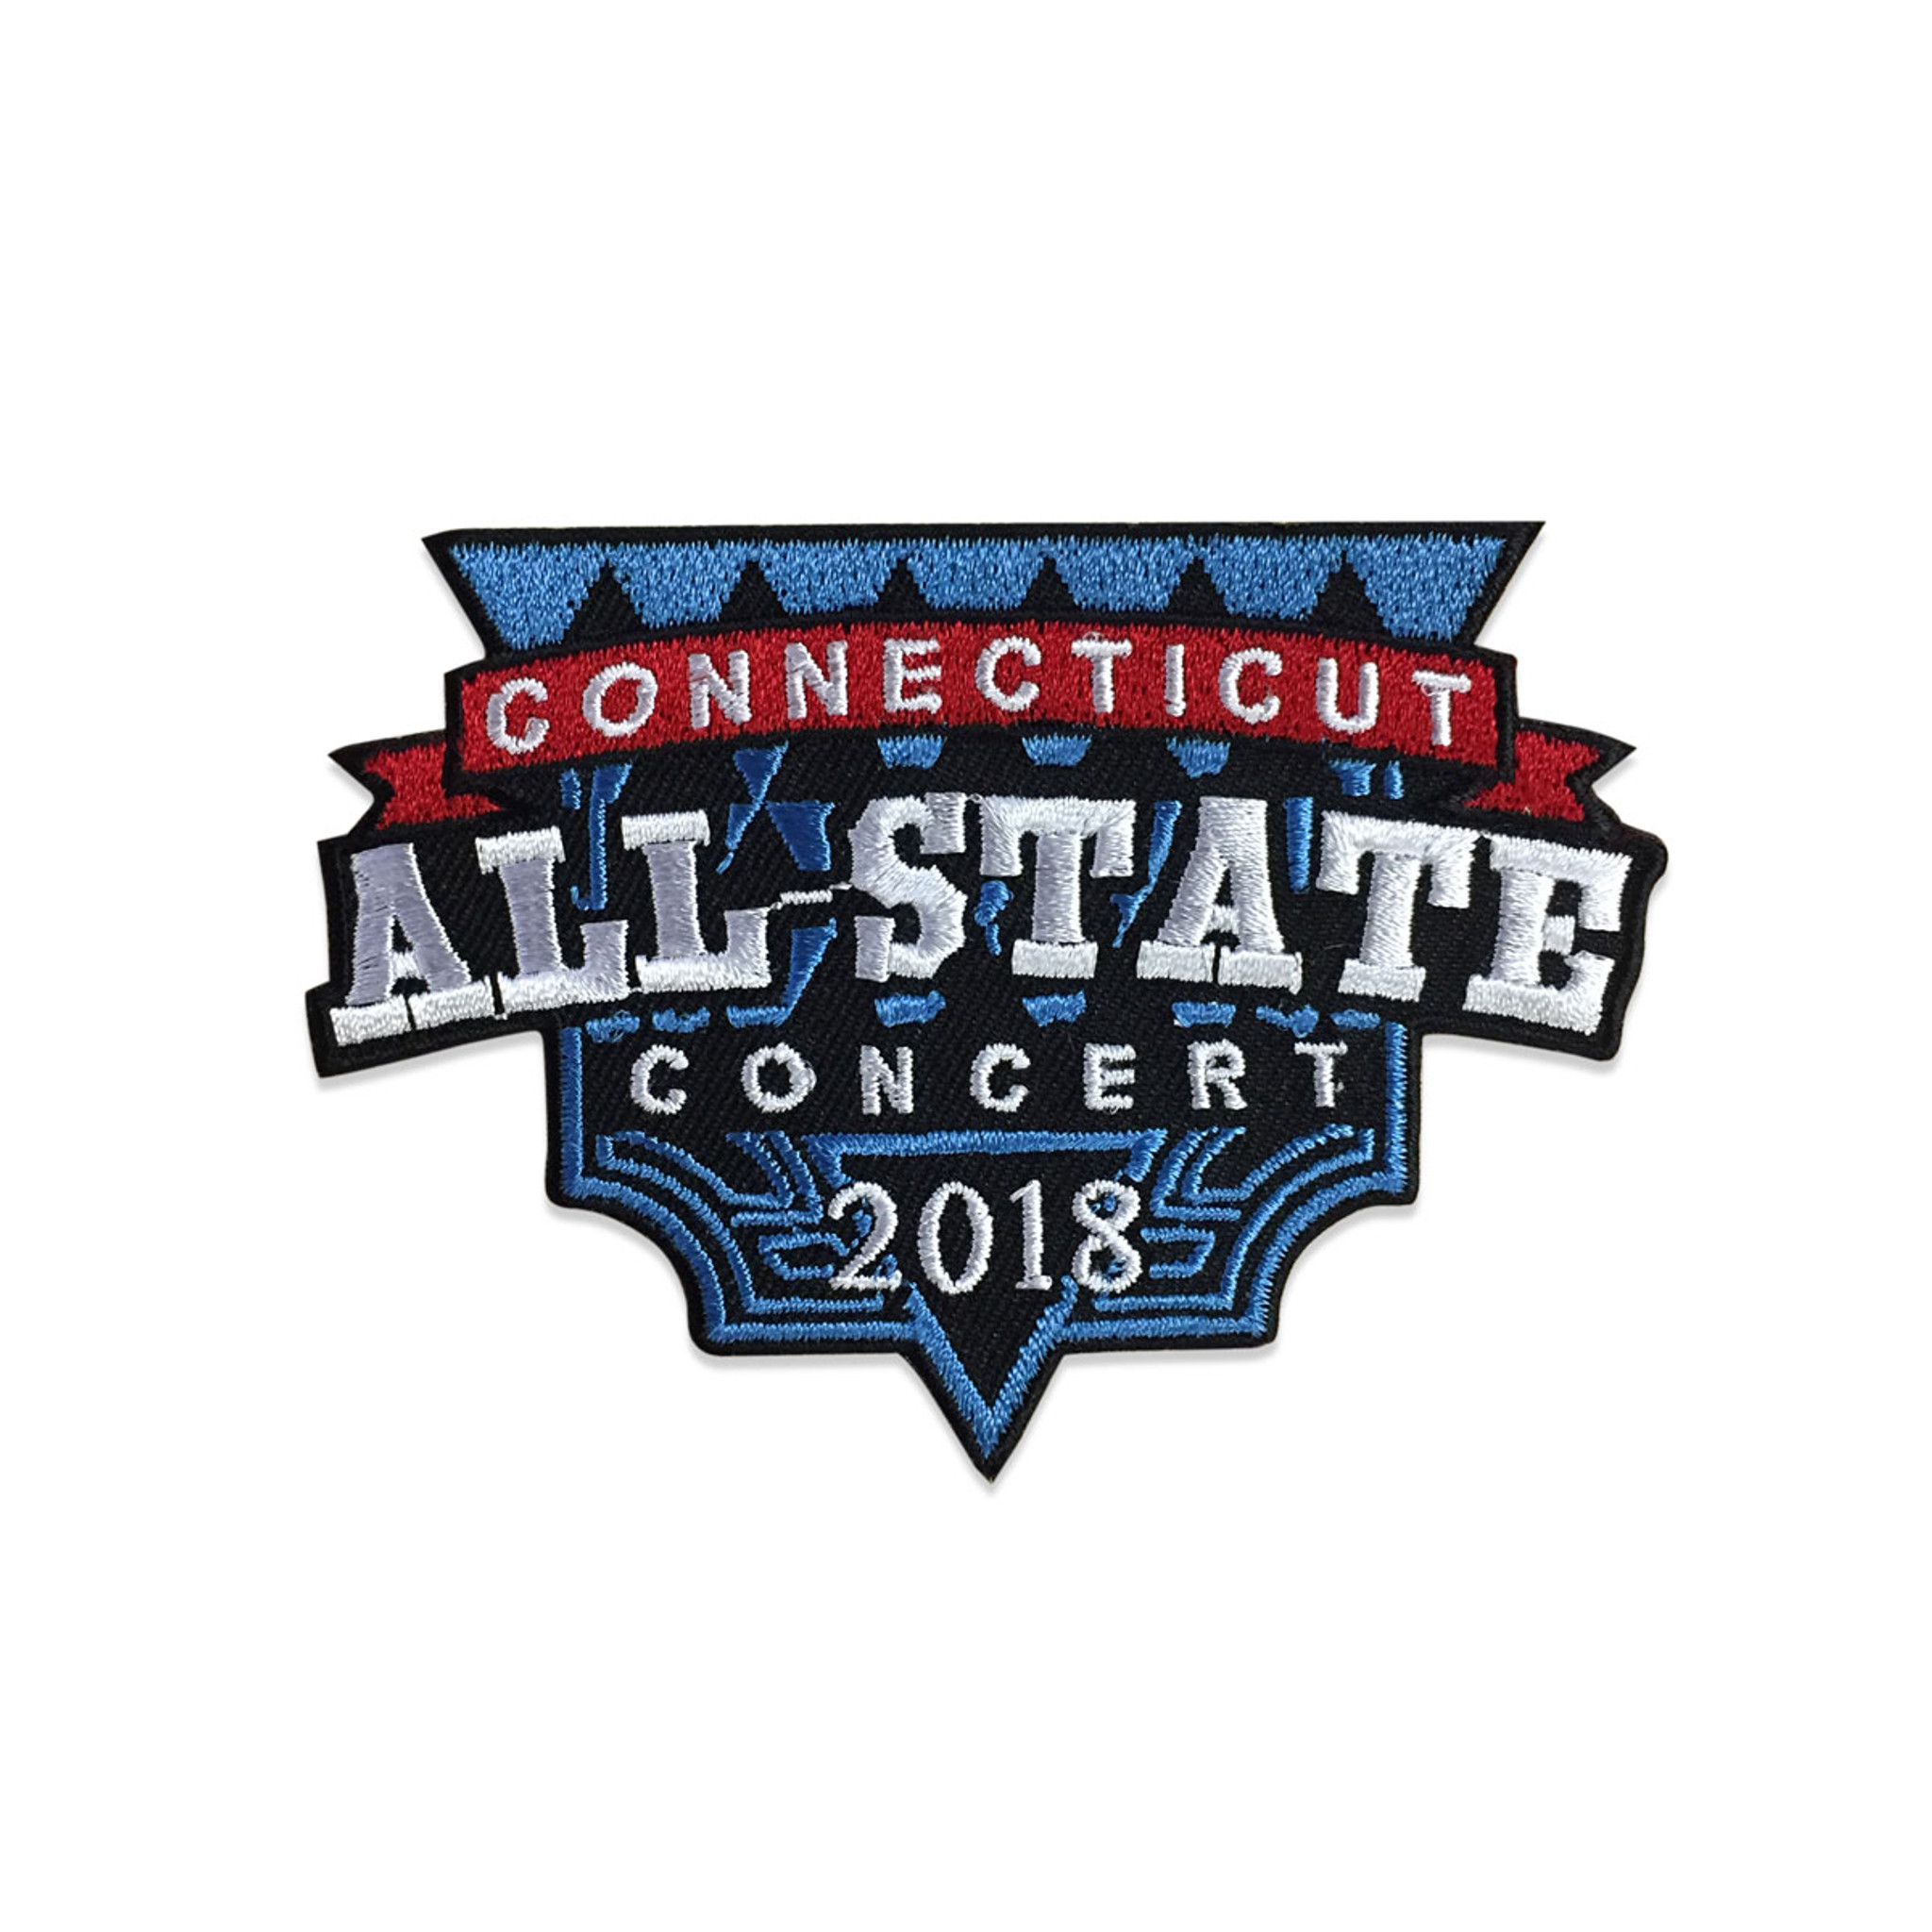 2018 Connecticut All-State Concert Patch